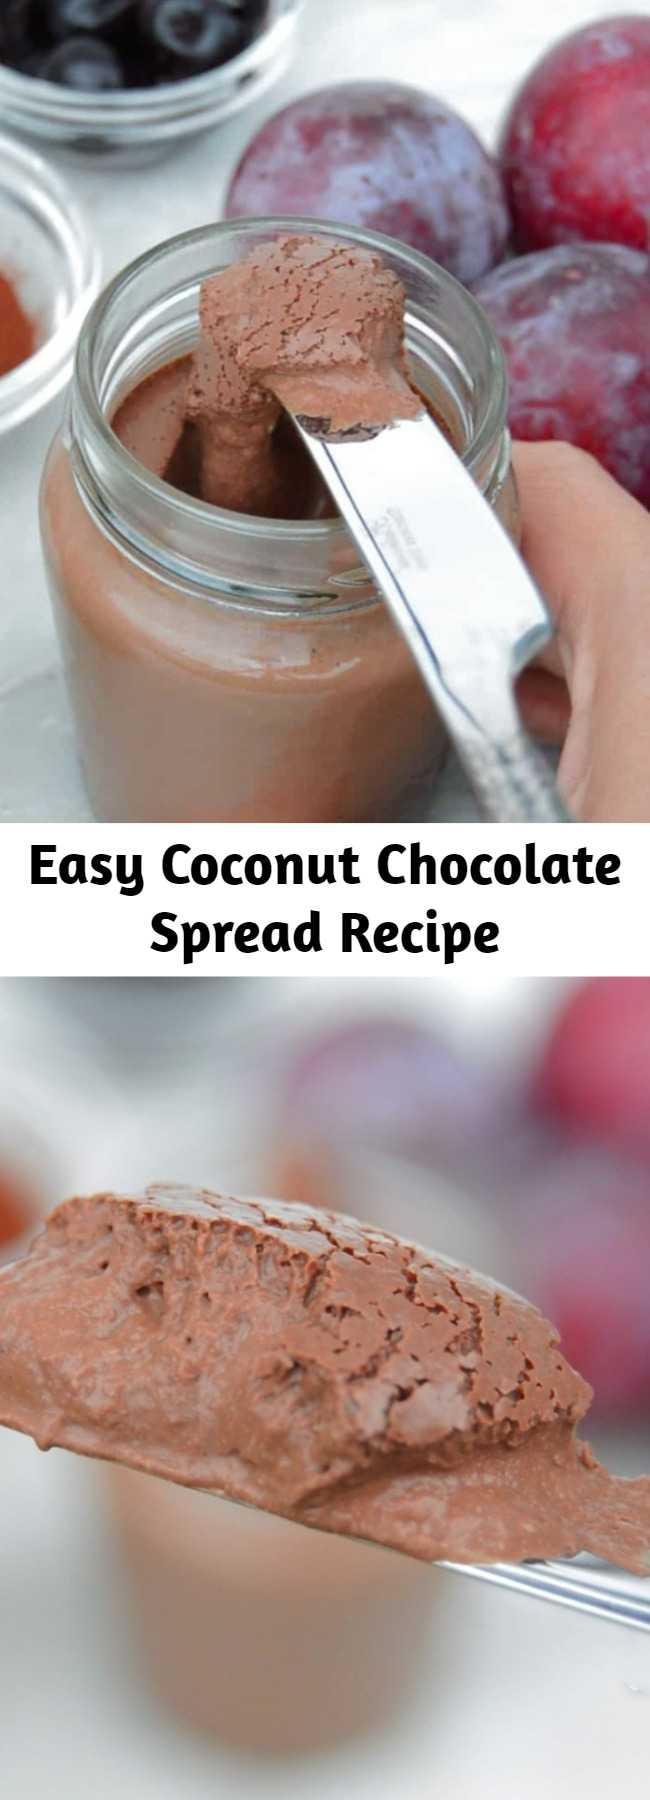 Easy Coconut Chocolate Spread Recipe - Dairy free chocolate spread that takes a few minutes to make. Perfect on hot bread, crackers or just eaten with a spoon. Rich and creamy thanks to coconut that gives an amazing taste and texture. #vegan #chocolate #chocolatespread #veganrecipe